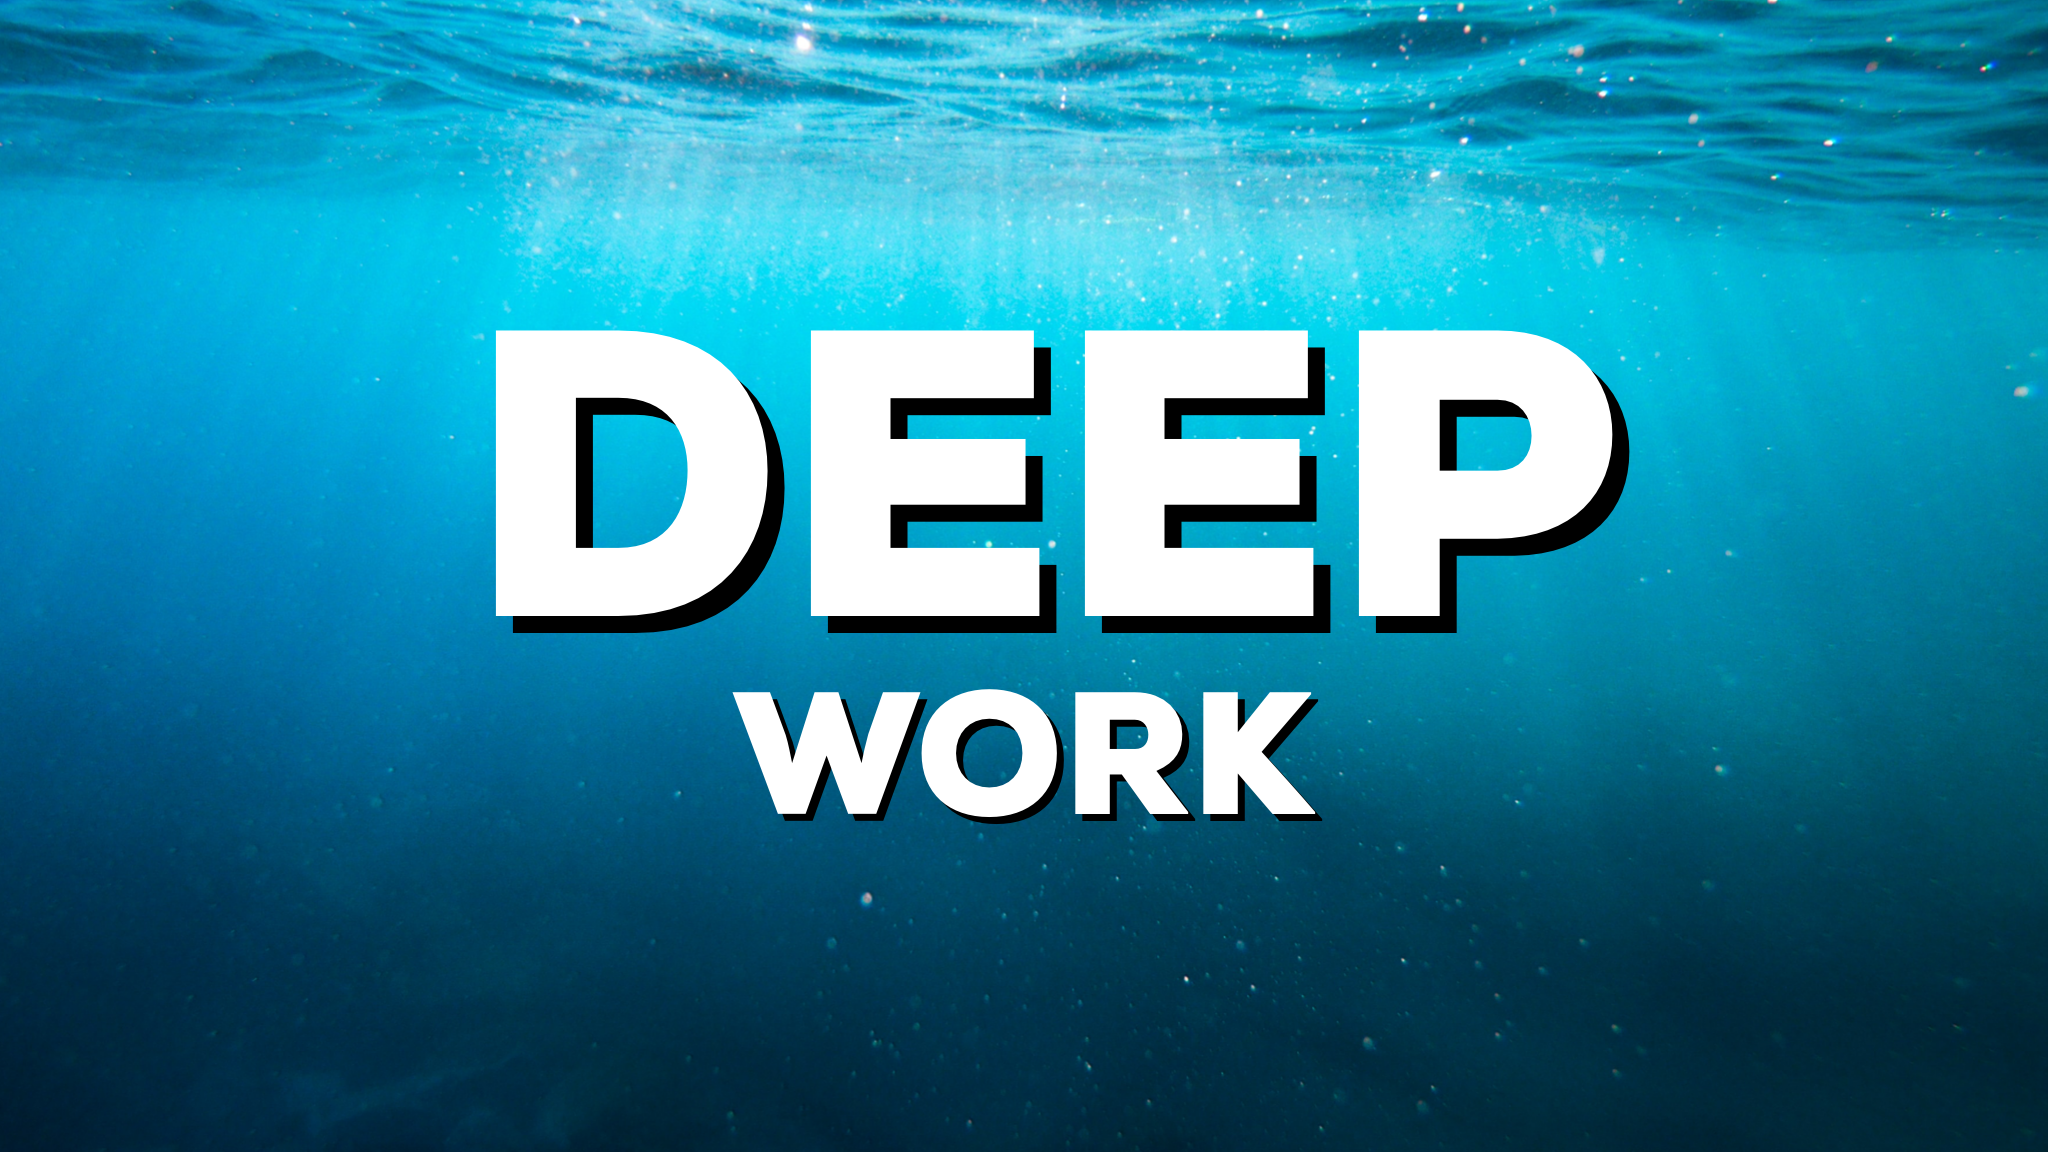 Reid and Jesse look at how our digital age fragments, distracts and disjoints our ability to do deep work. Guided by the book, Deep Work, by Cal Newport, they discuss how being able to go deep is both a helpful and virtuous path.